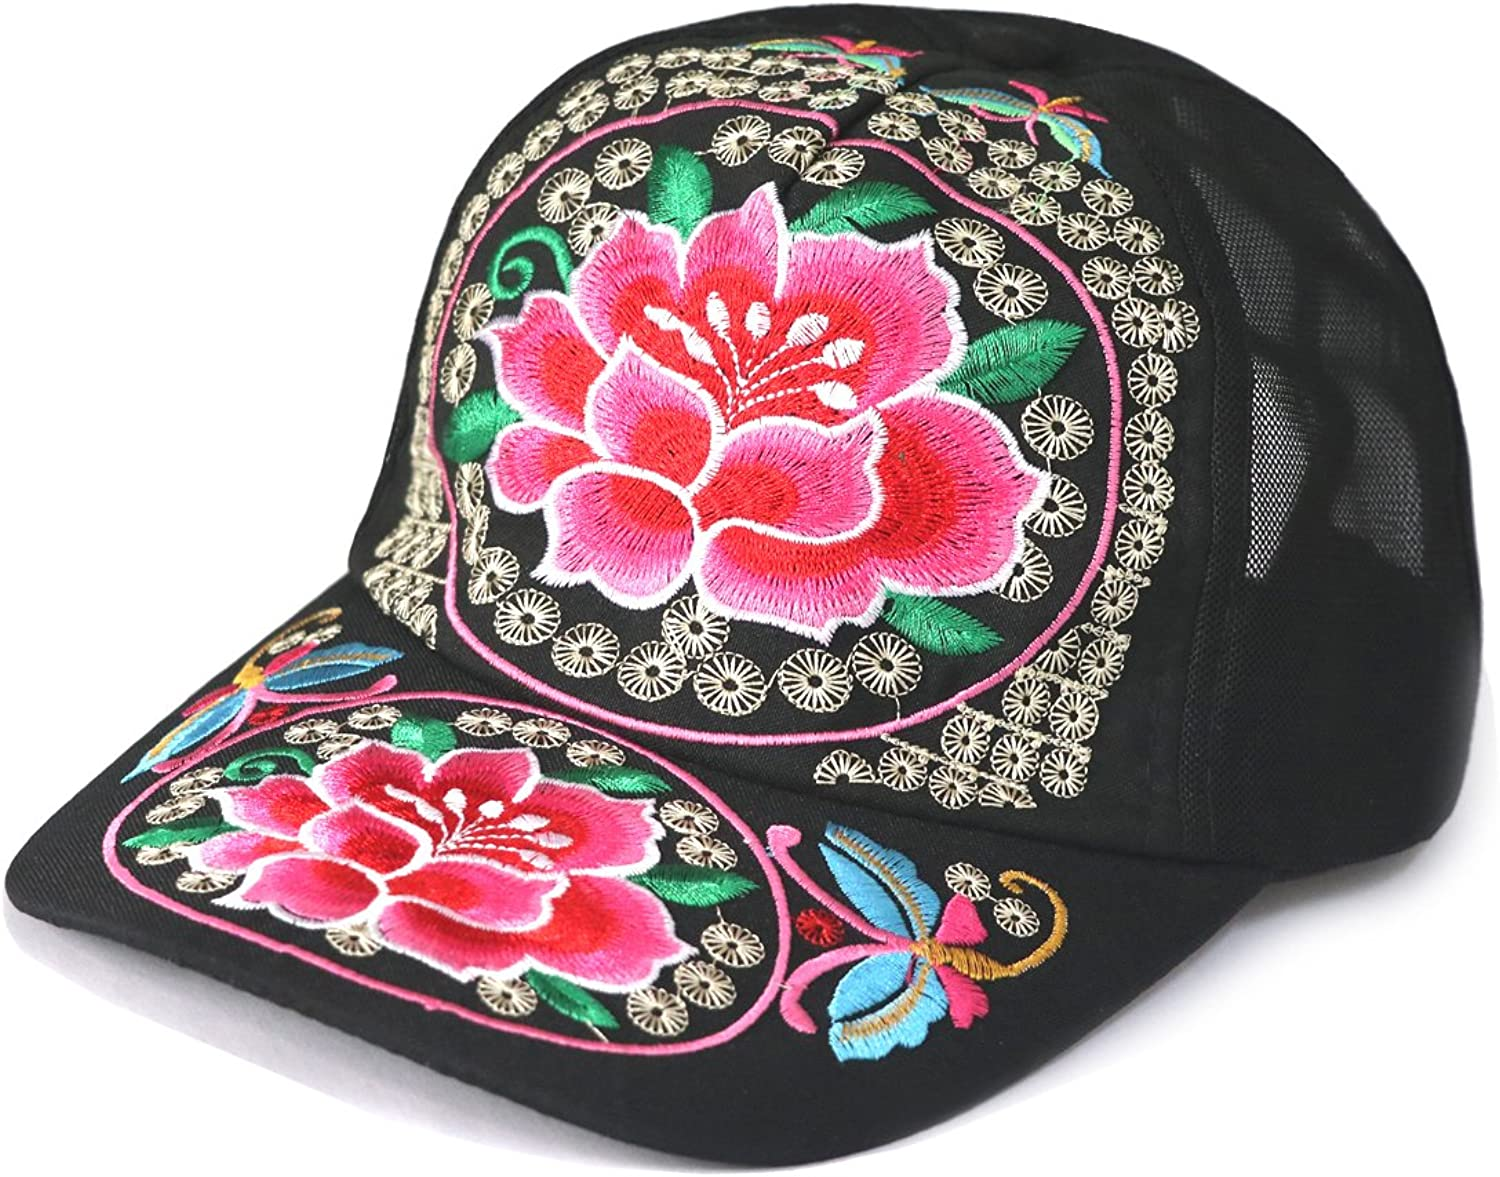 Acheers Vintage Embroidered Adjusable Travel Leisure Baseball Cap Summer Style Fashion Hat Multiple colors